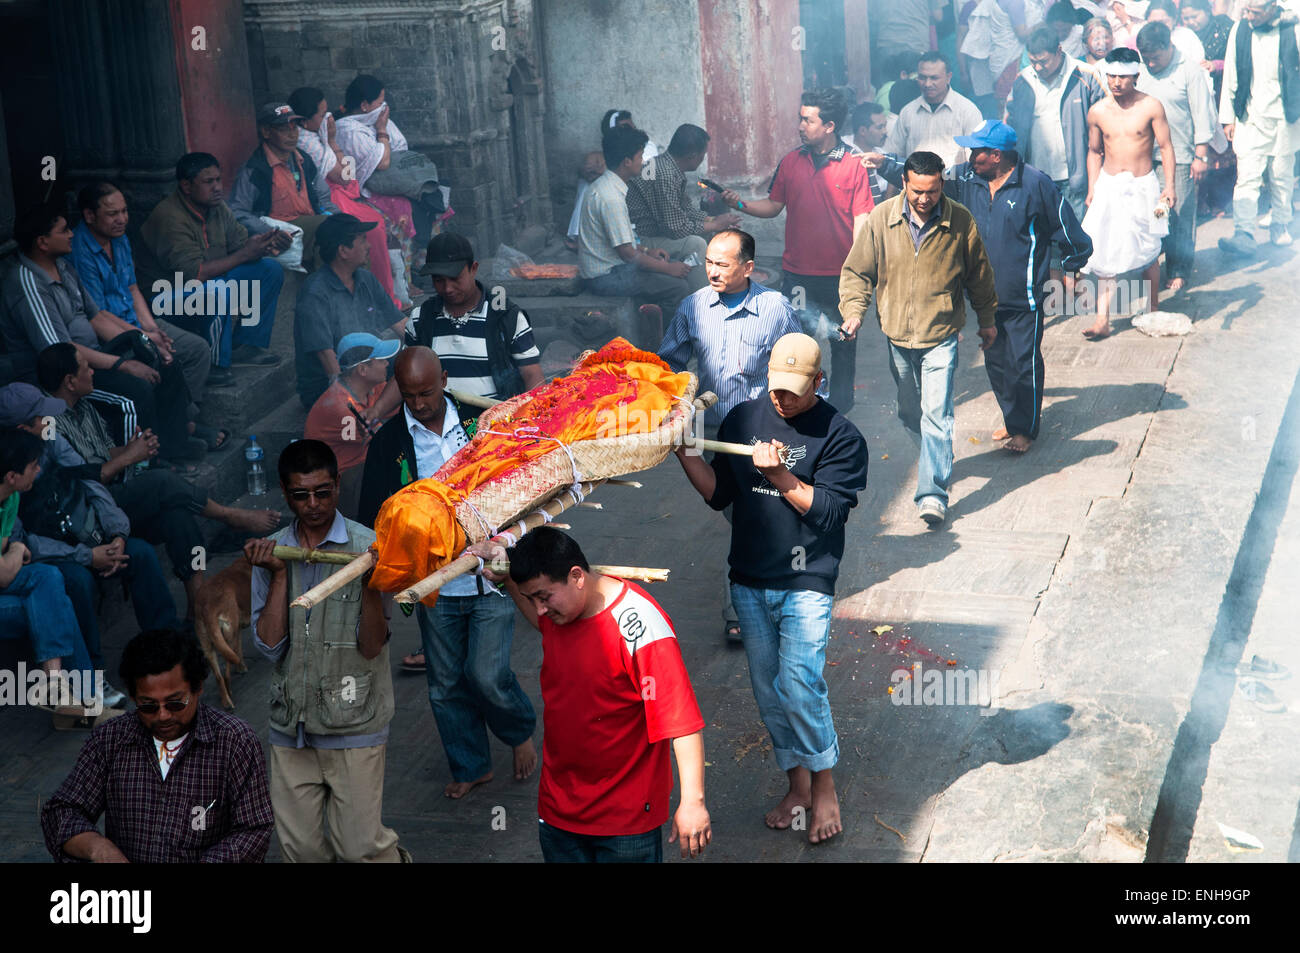 A body headed for cremation in Kathmandu's Pashupatinath temple - Stock Image